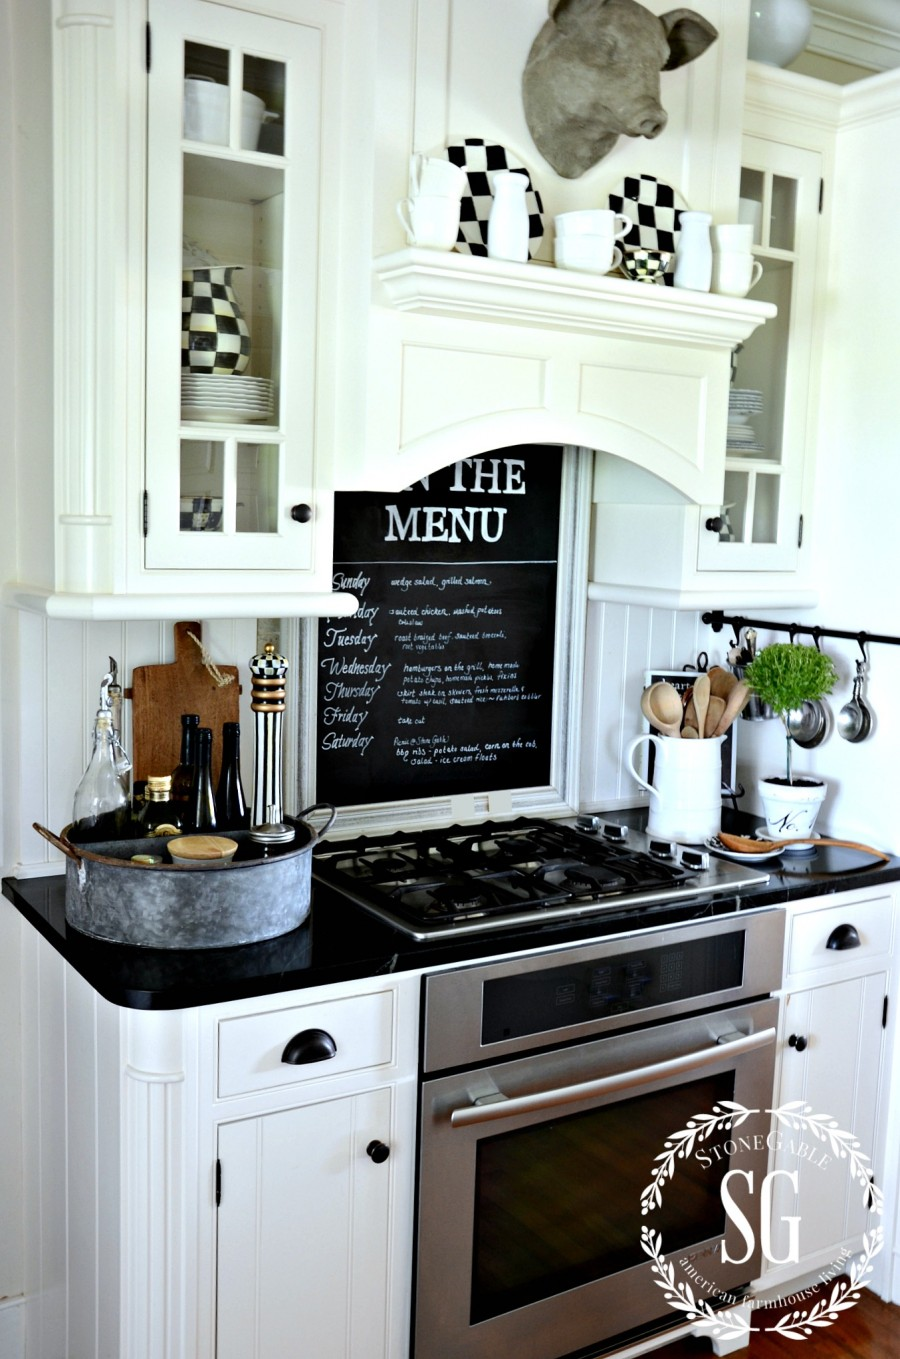 stonegable on pinterest white dishes farmhouse kitchens